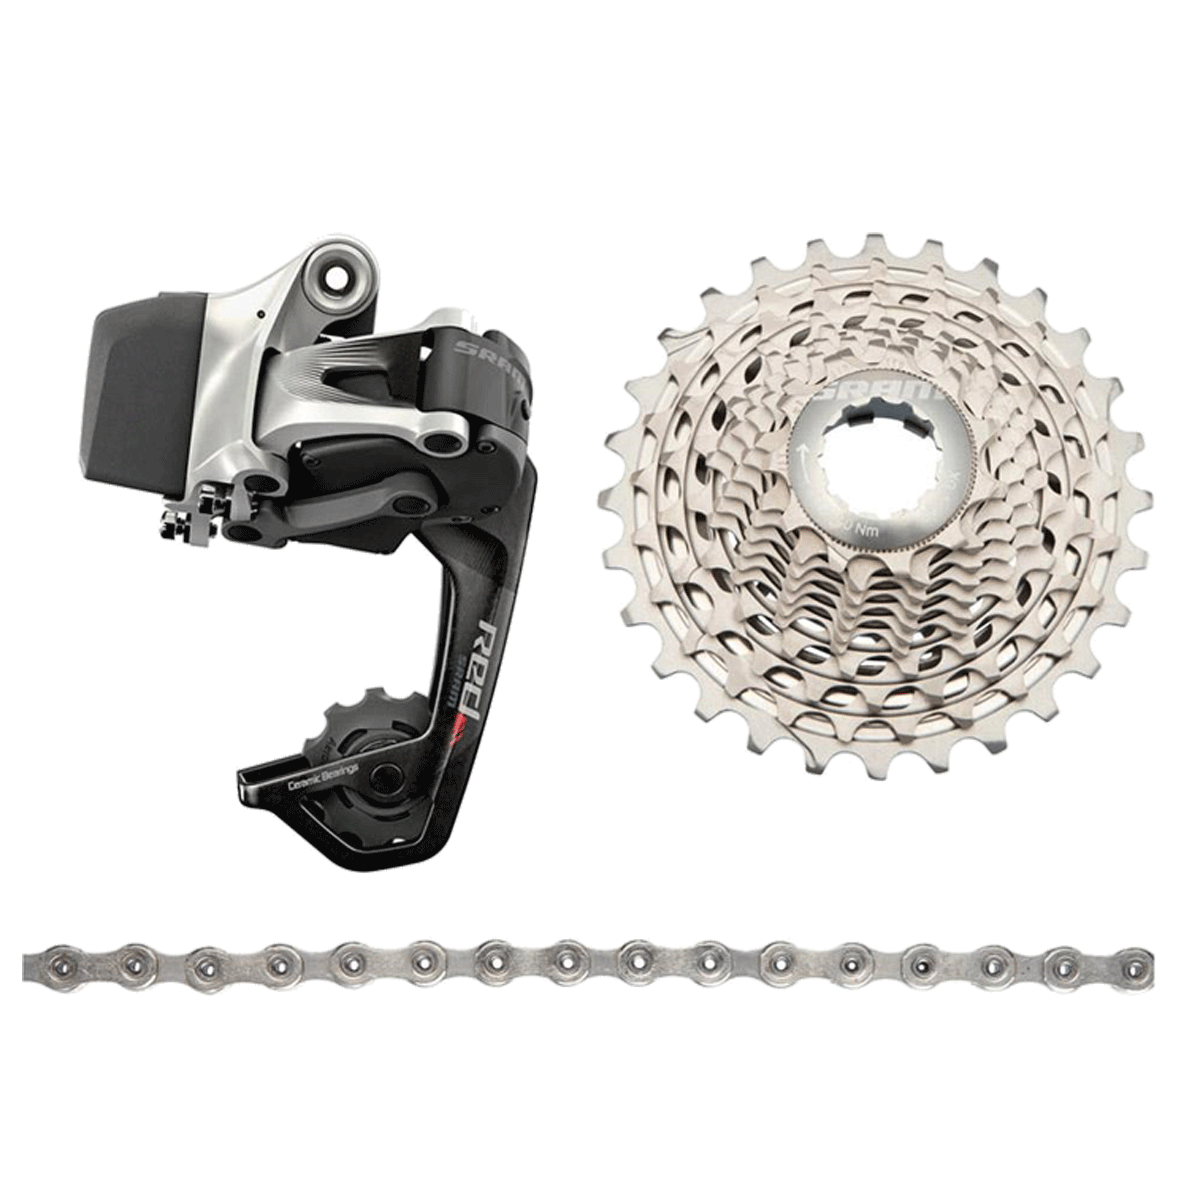 SRAM electric gears SRAM RED ETAP WIFLI UPGRADE KIT